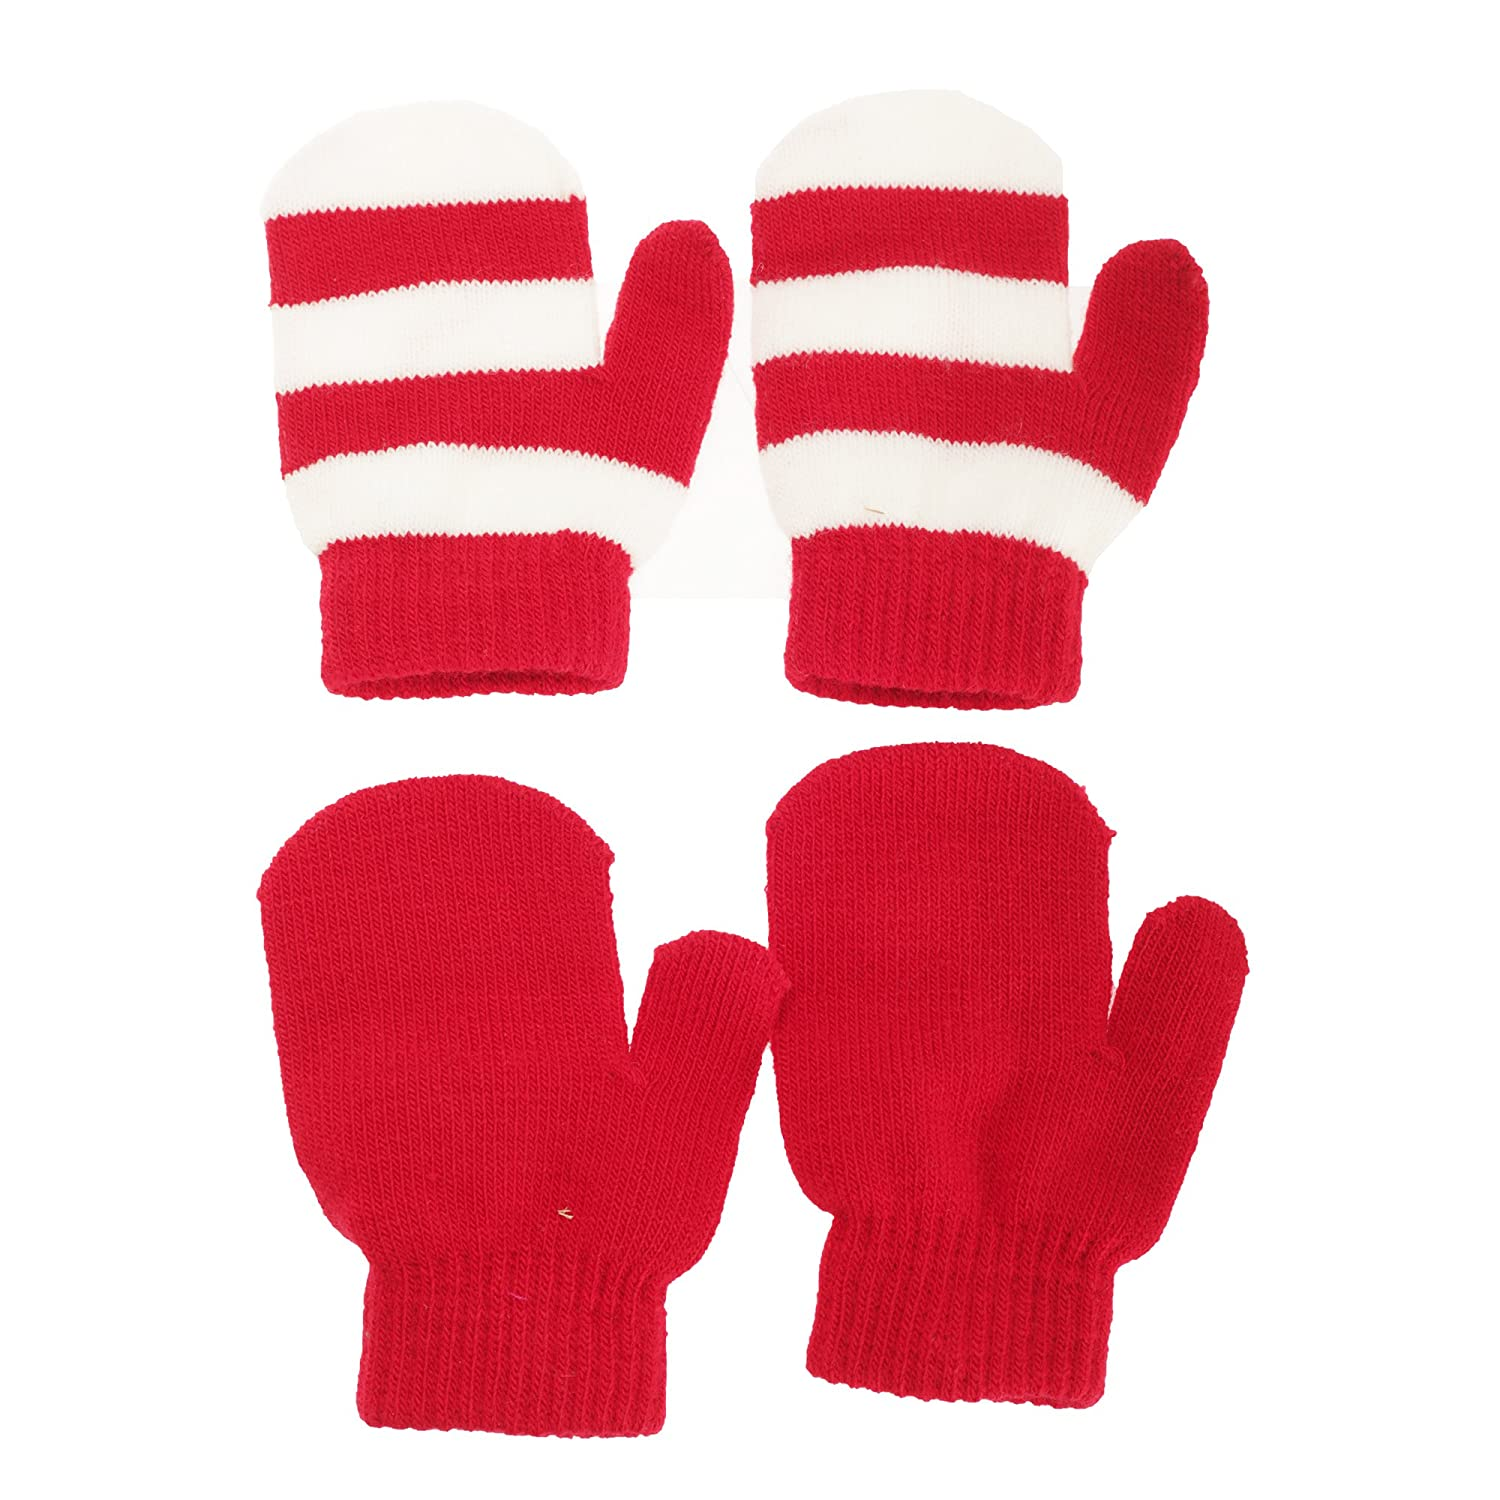 Baby Boys/Girls Winter Mittens (2 Pairs) UTBABY1259_6